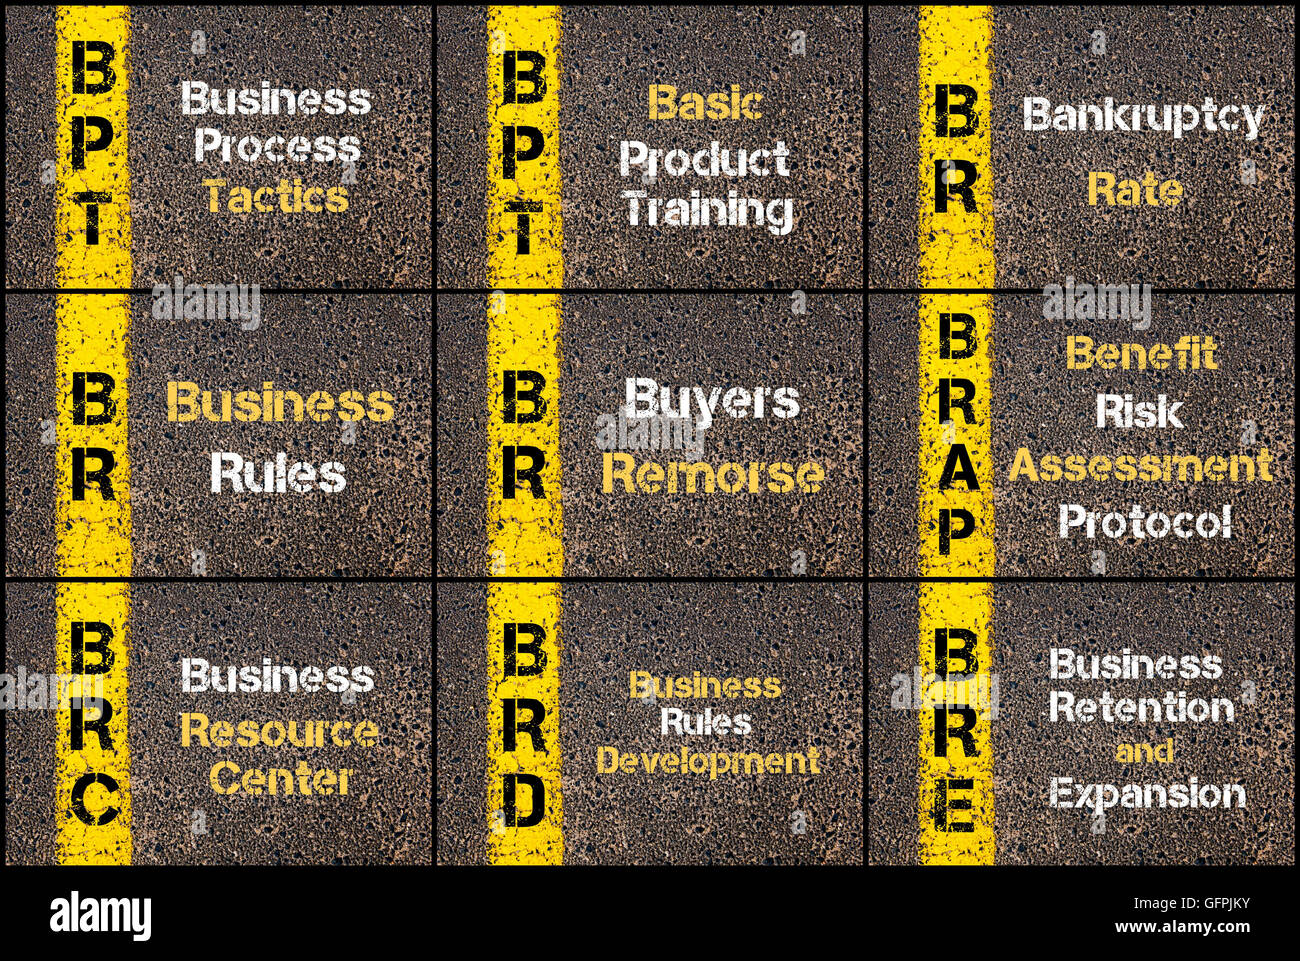 Photo collage of Business Acronyms written over road marking